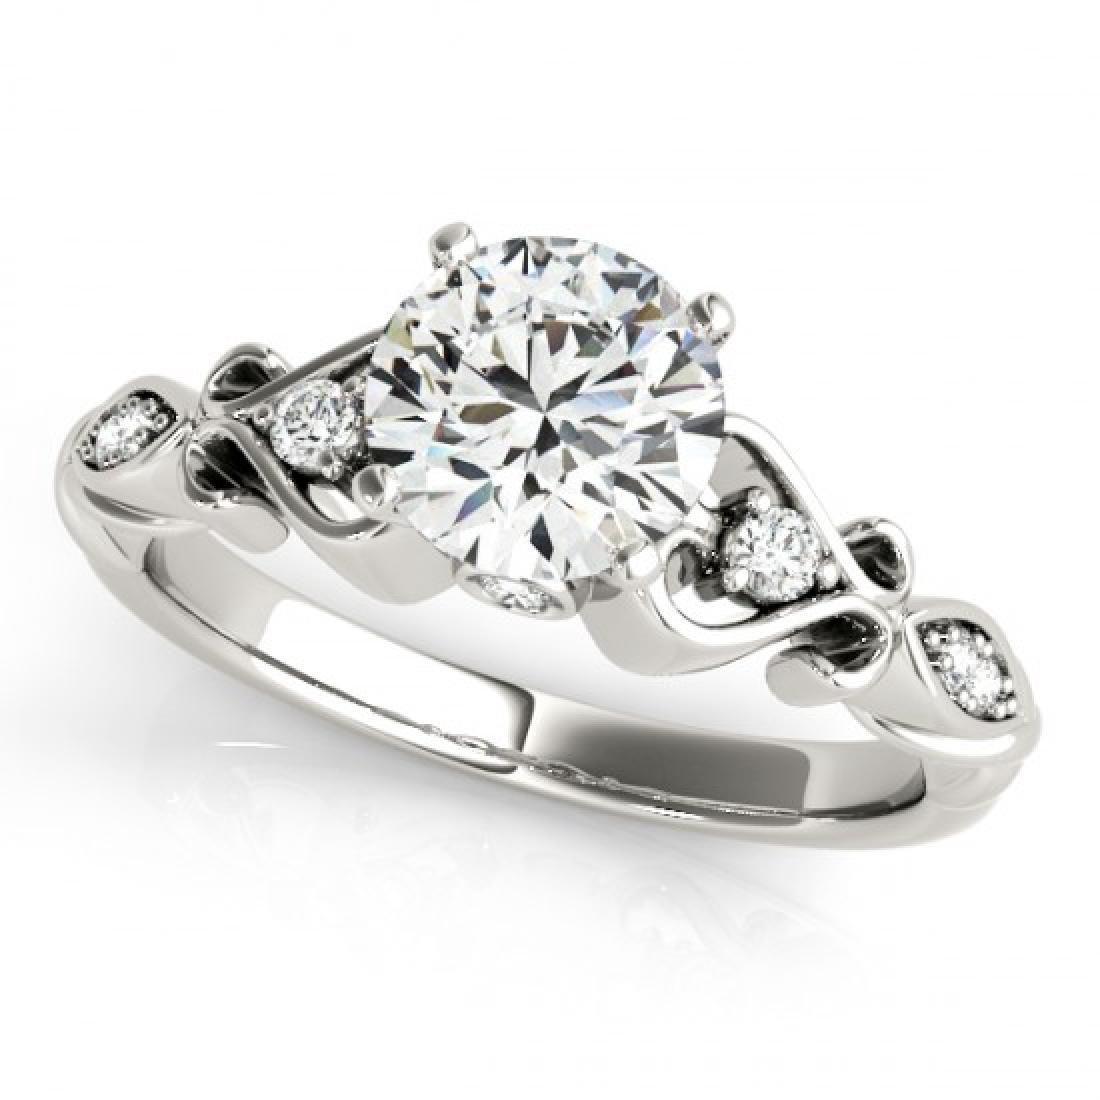 0.65 CTW Certified VS/SI Diamond Solitaire Antique Ring